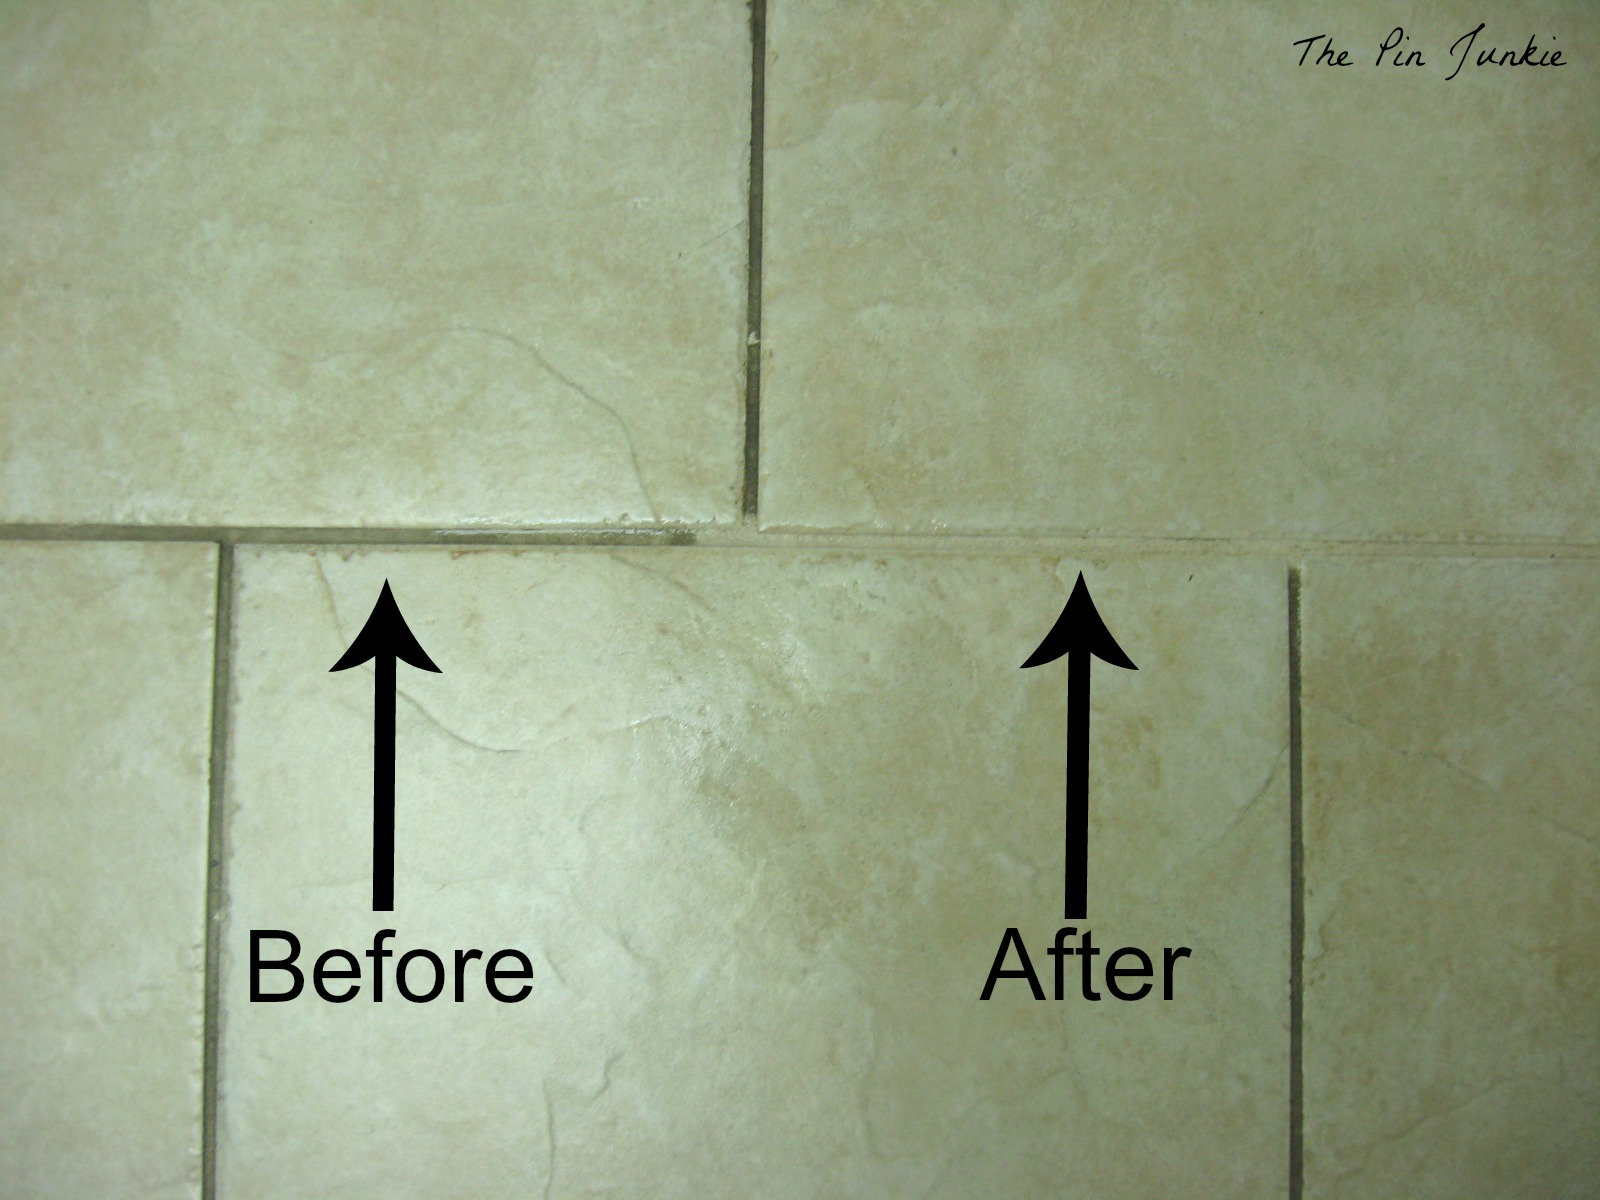 How To Clean Tile Grout - How to clean bathroom floor tile grout